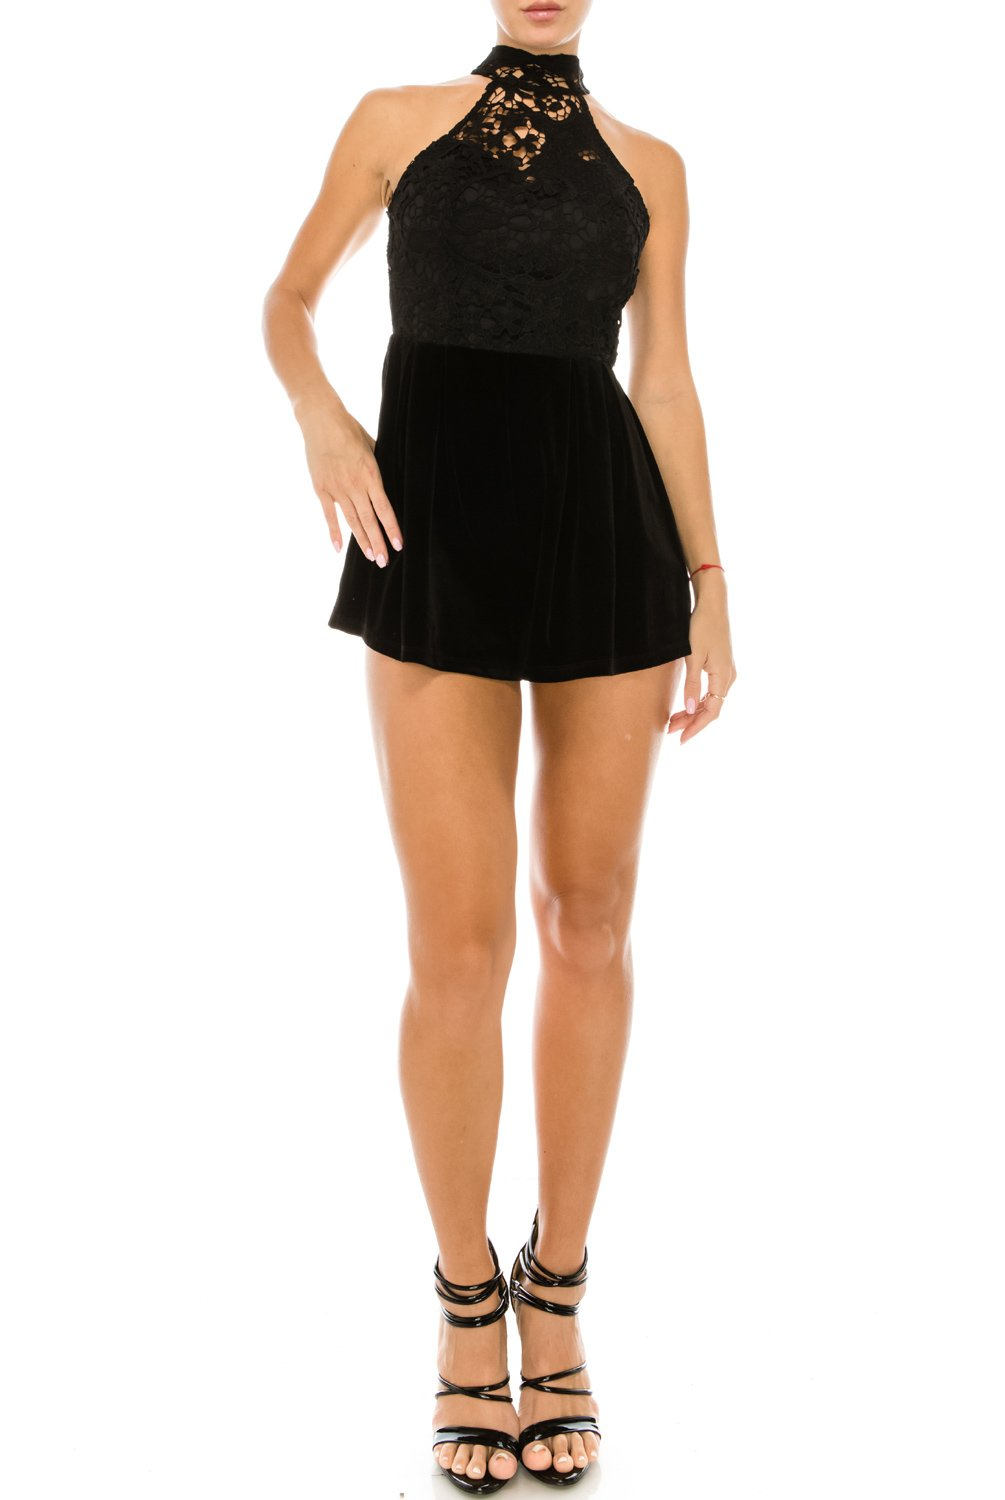 Women's Sexy Sleeveless Halter Neck Crotchet Lace Velvet Romper Club Wear Black Small